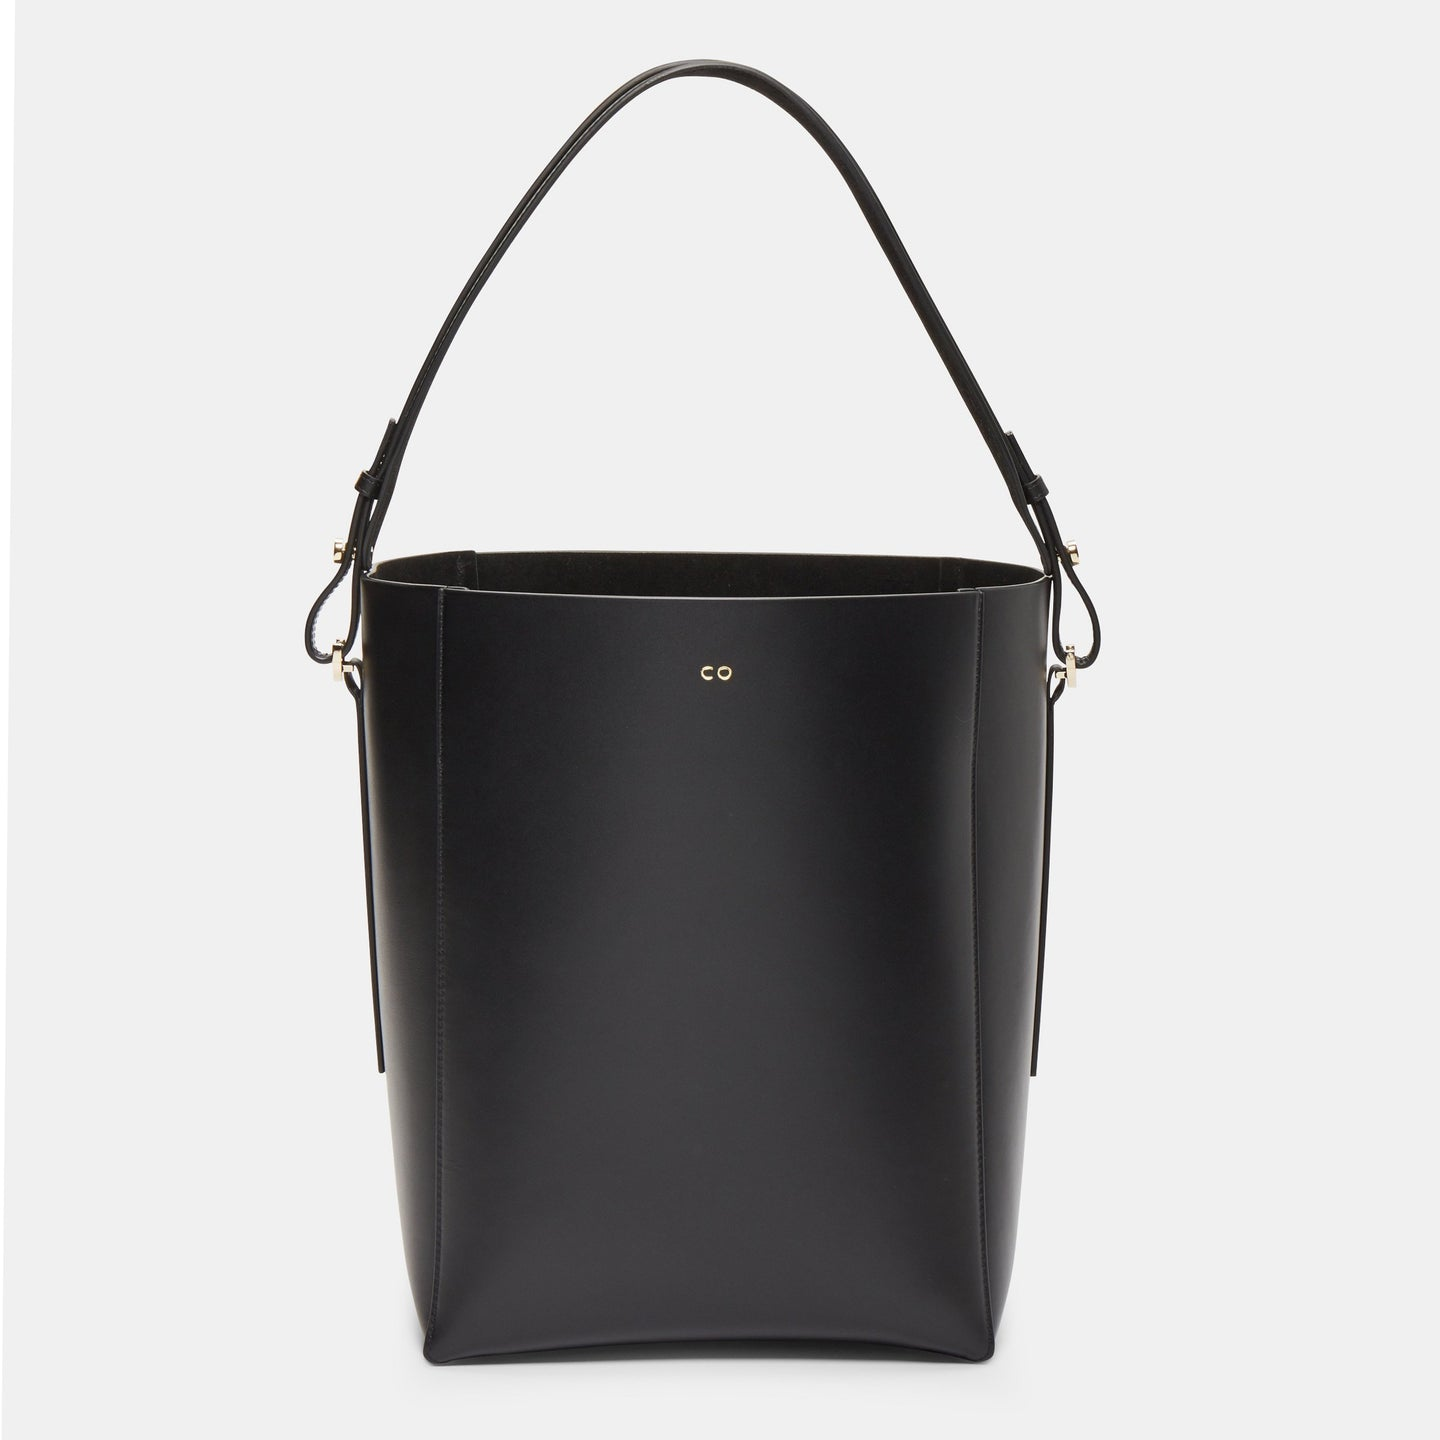 CO - Bucket bag in smooth Leather - Black